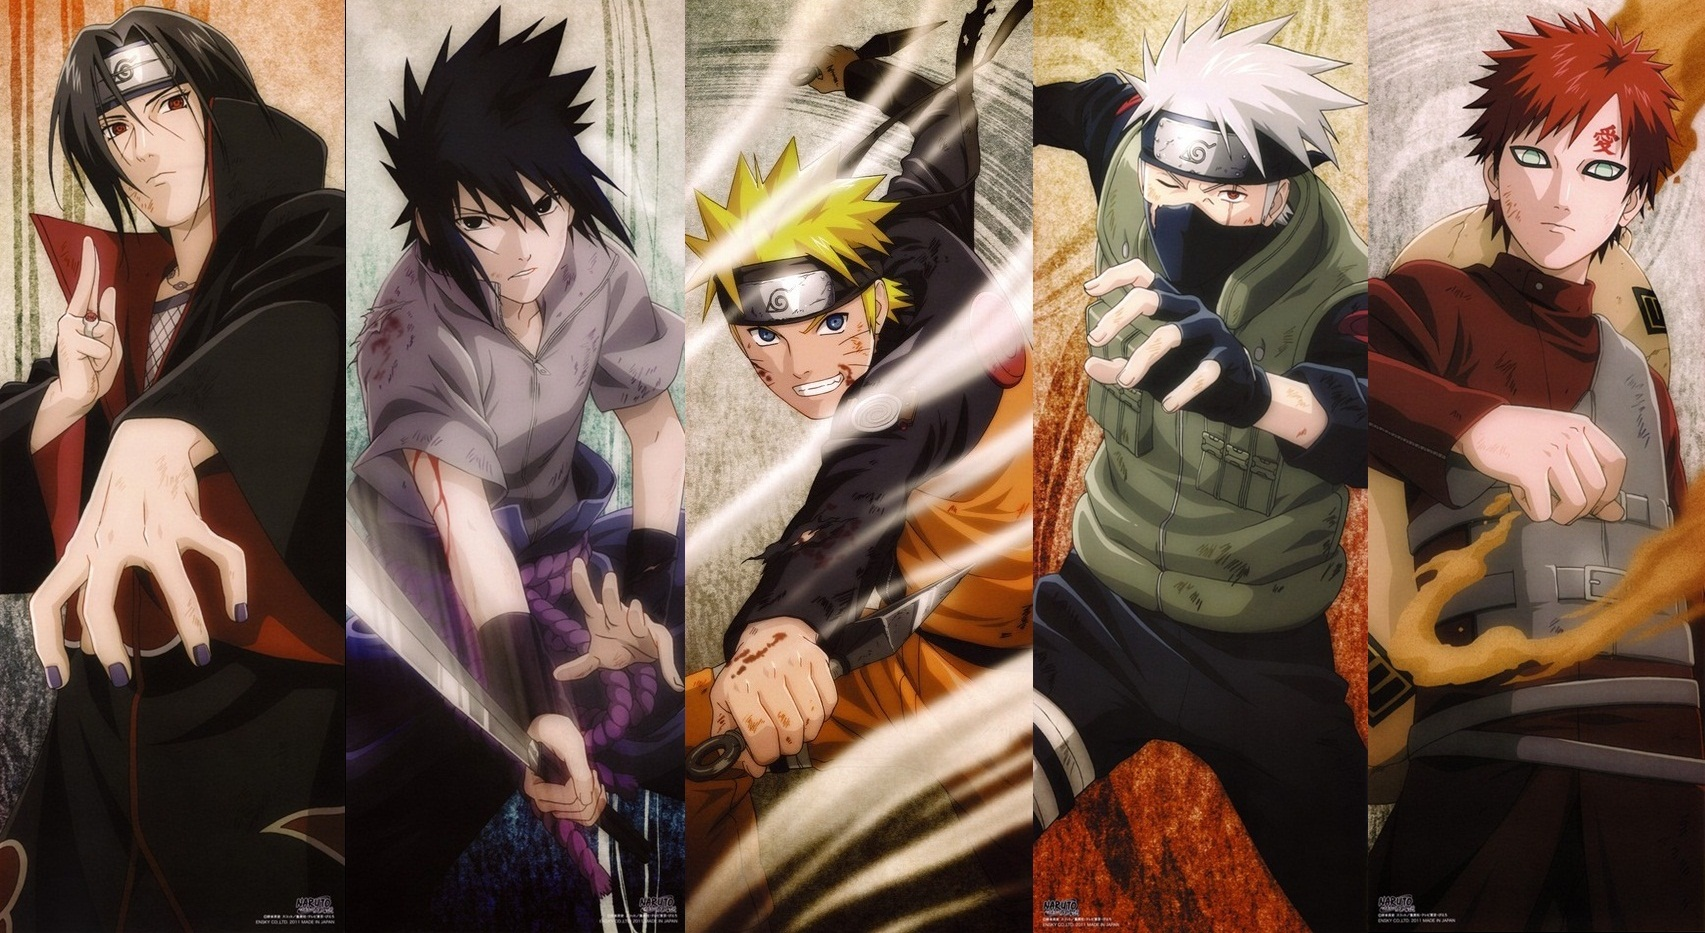 El anime que supero a Dragon Ball Z, Death Note y One Piece